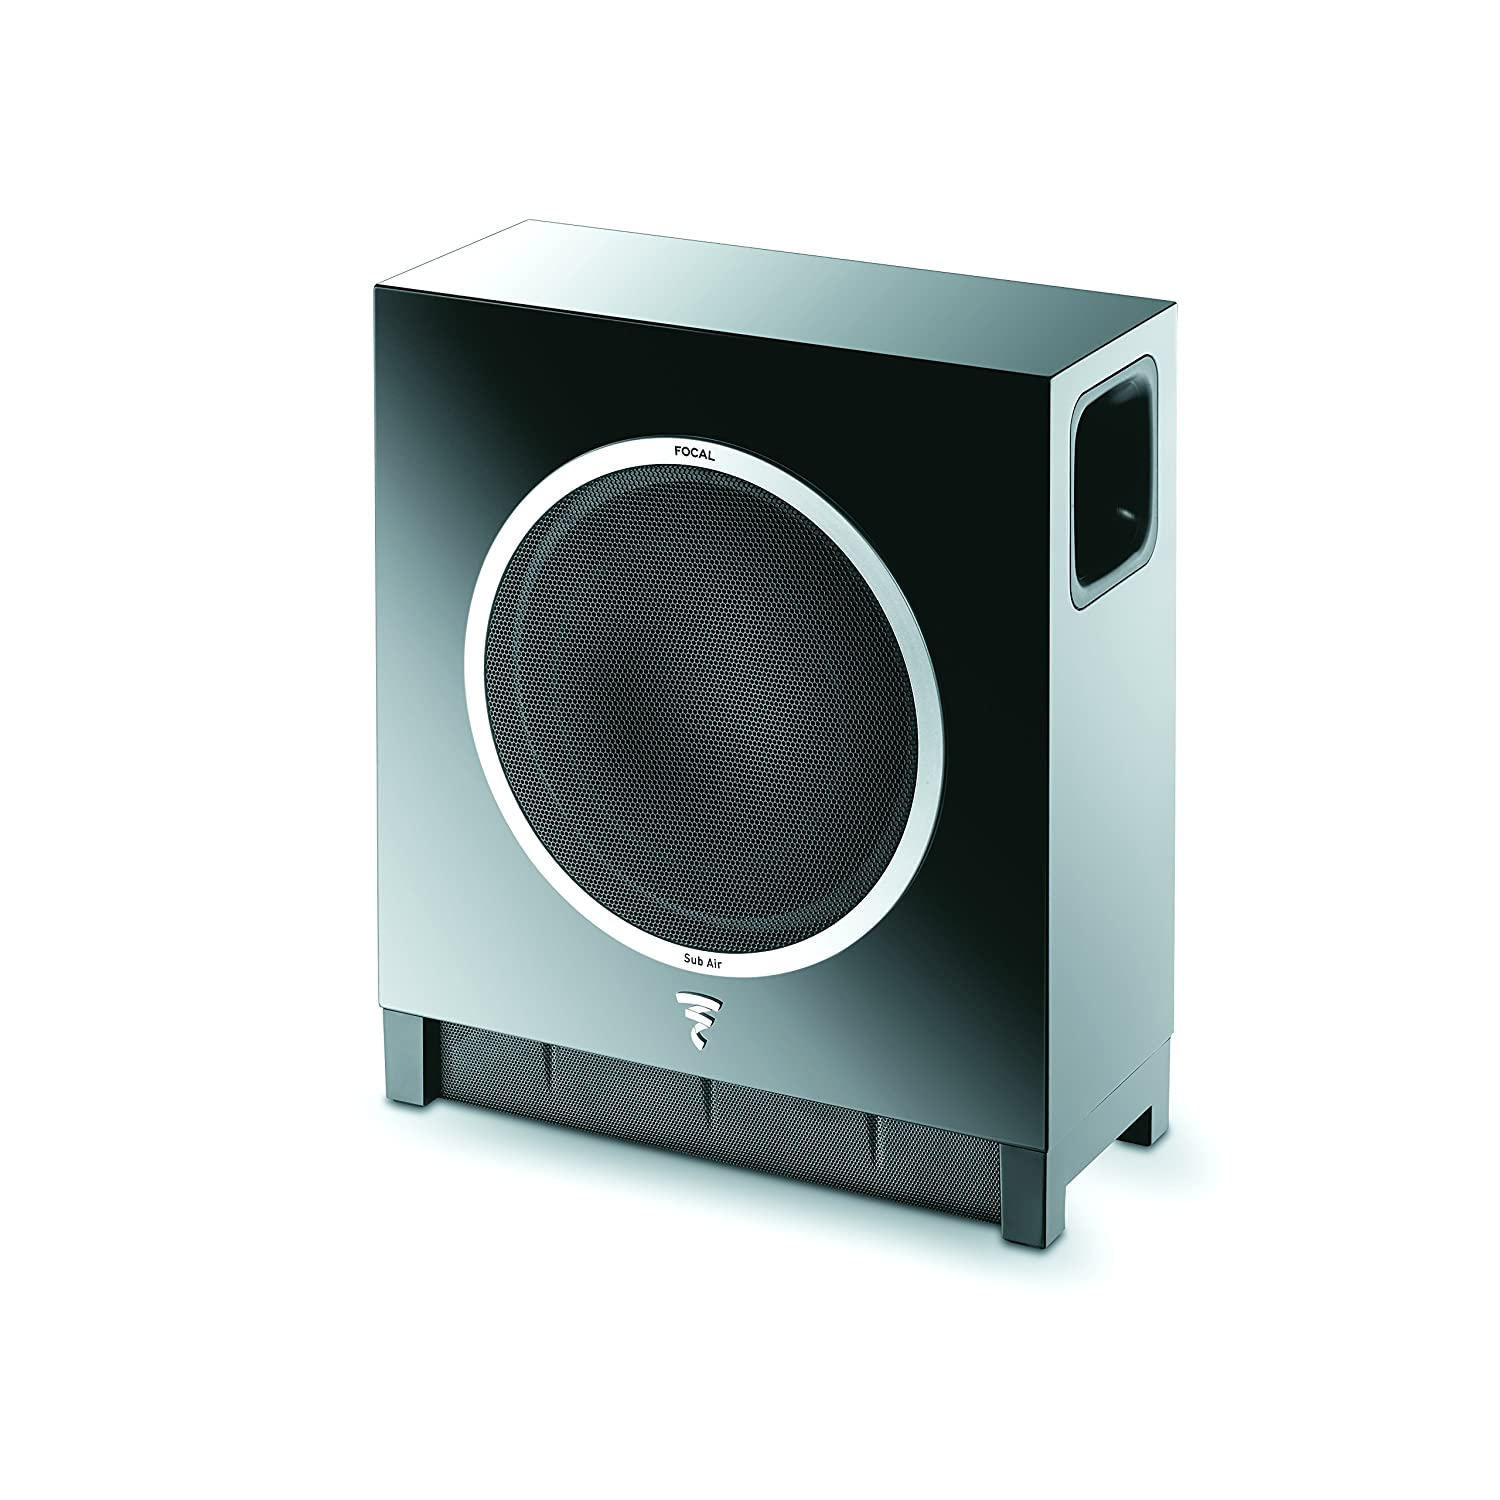 Focal - Sub Air - Wireless Ultra Flat 8 Subwoofer - High Gloss Black by Focal B00D8IITDQ